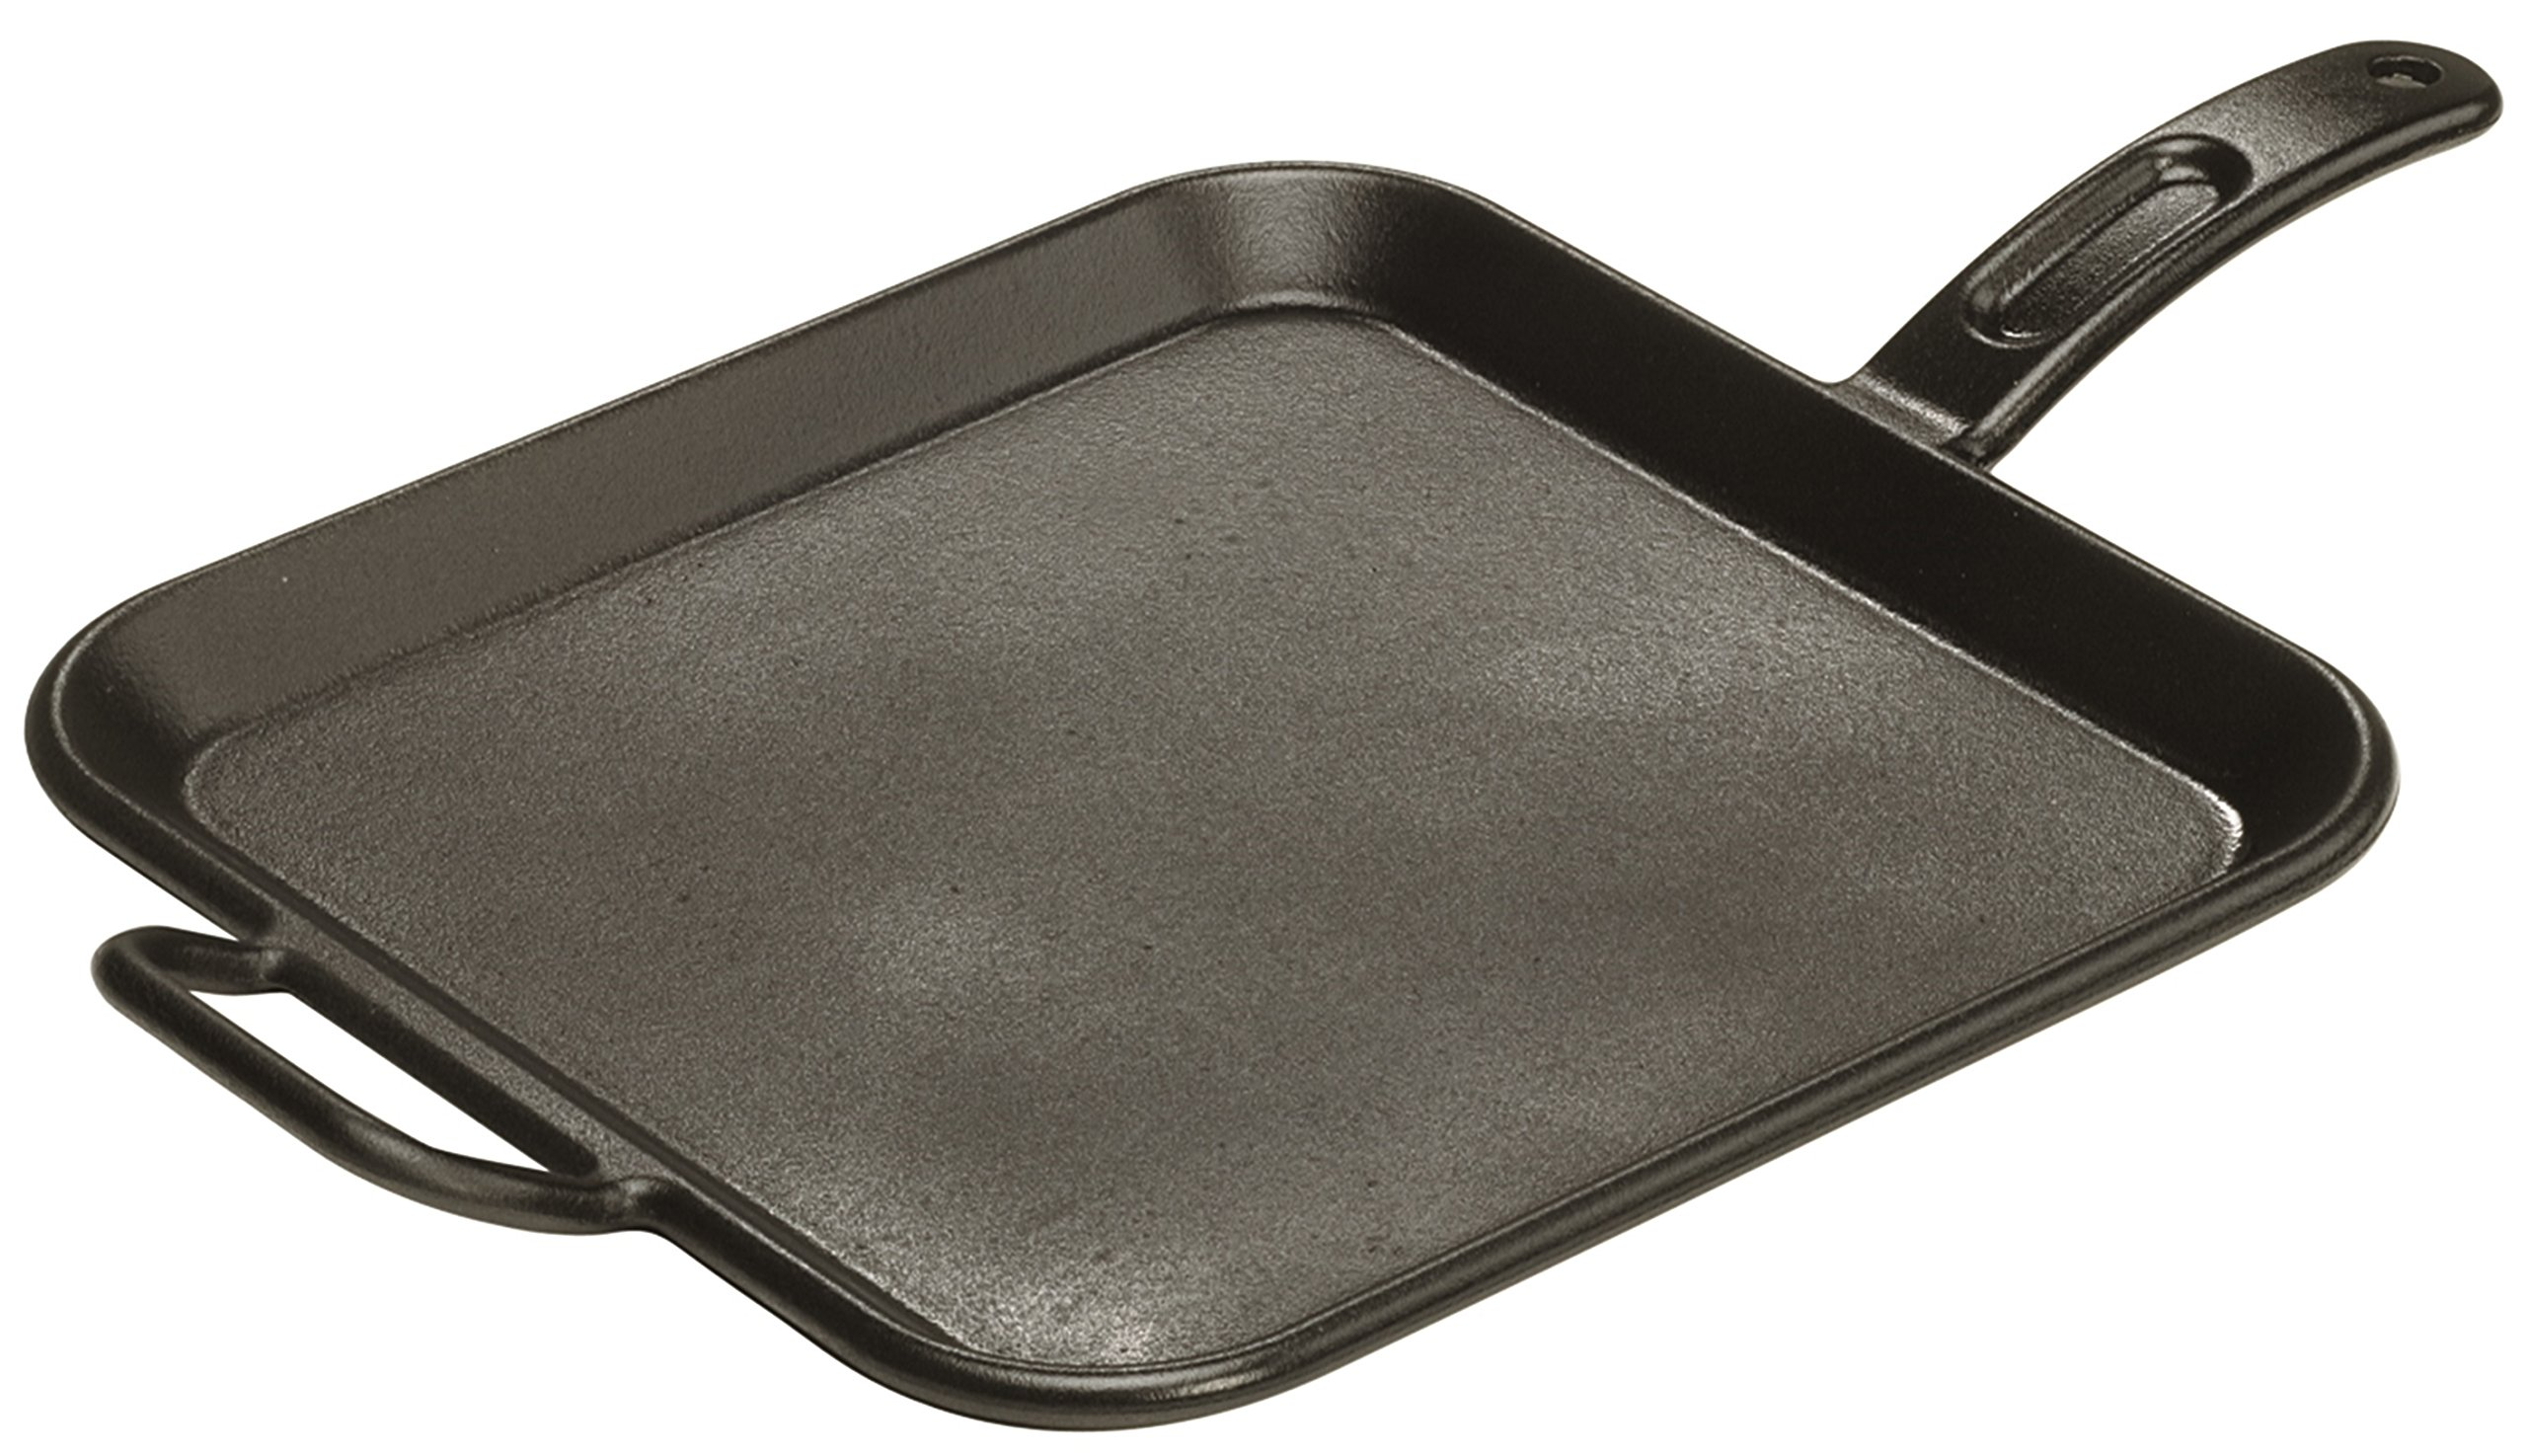 Lodge Pro-Logic 12 Inch Square Cast Iron Griddle. Pre-Seasoned Grill Pan with Dual Handles